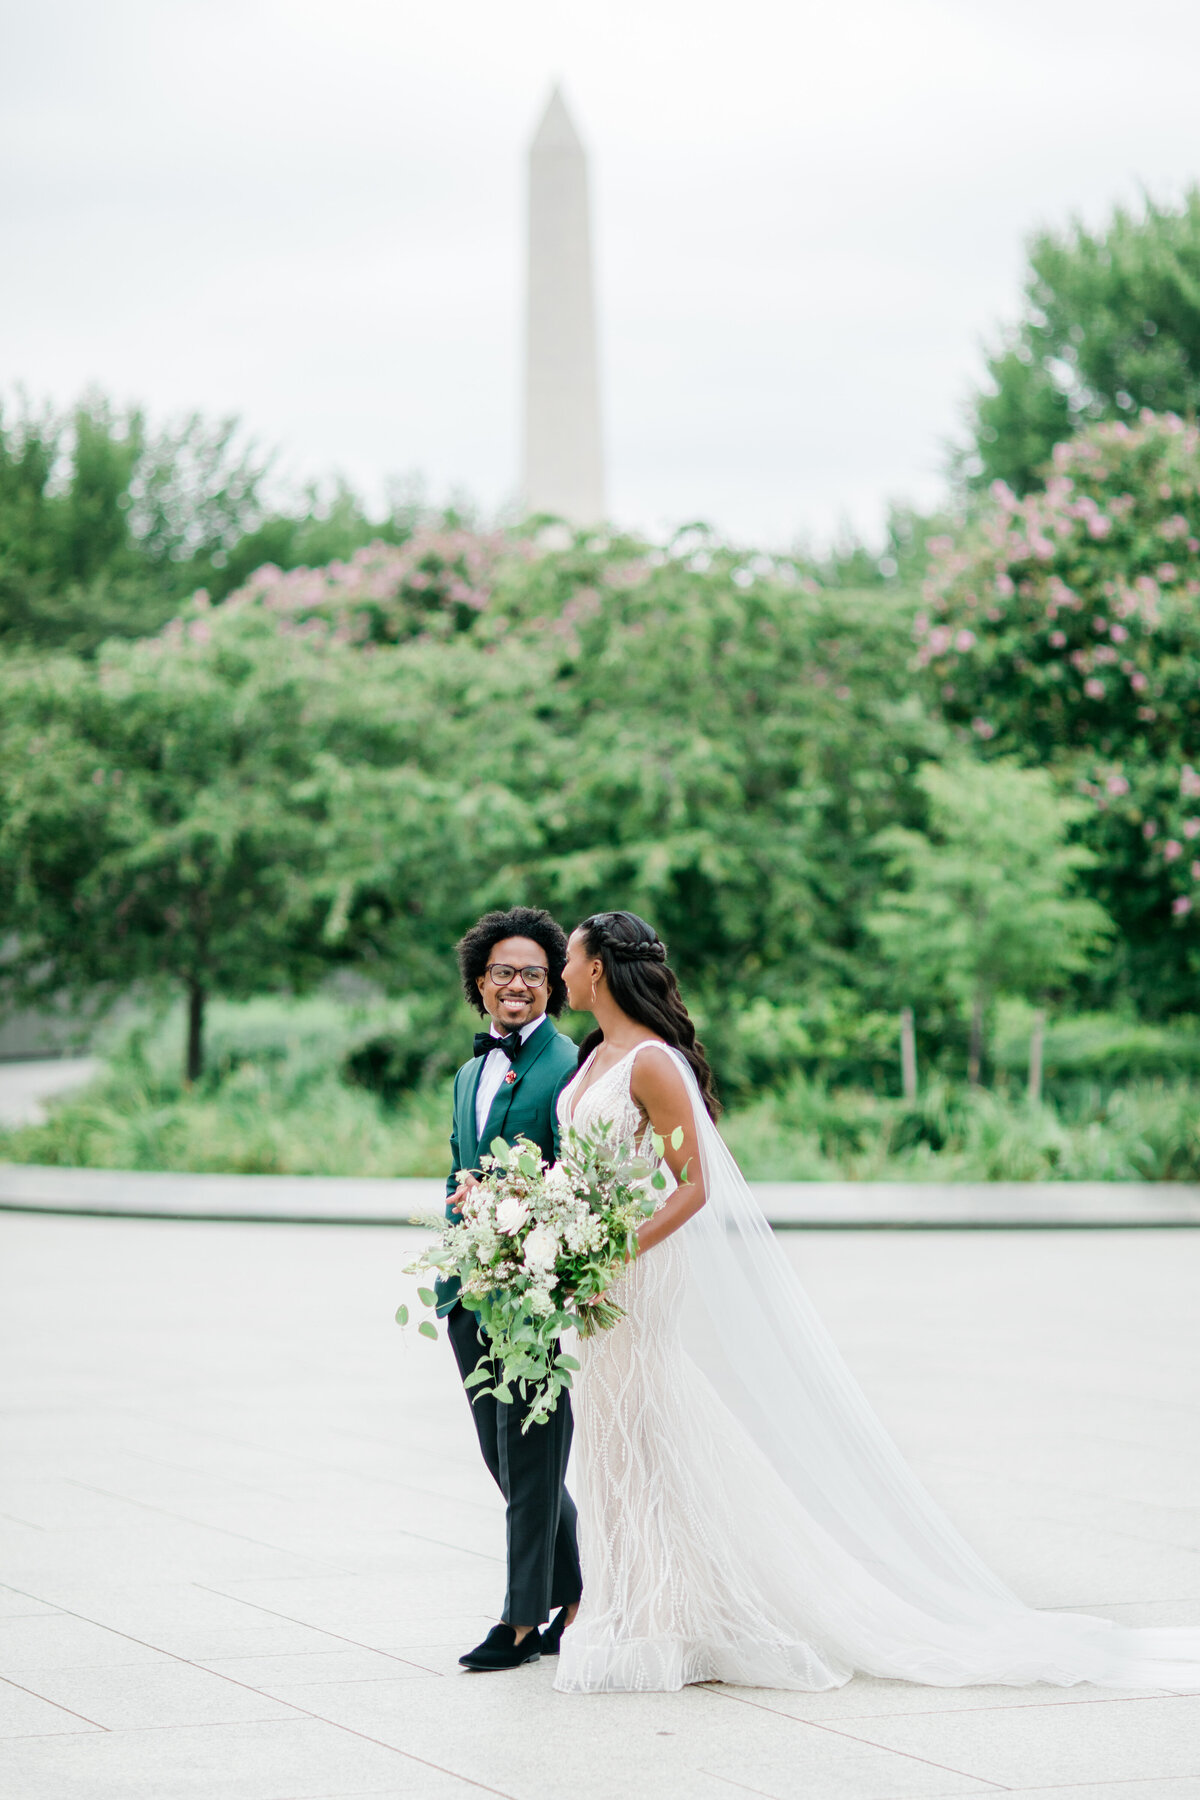 Solomon_Tkeyah_Micro_COVID_Wedding_Washington_DC_War_Memorial_MLK_Memorial_Linoln_Memorial_Angelika_Johns_Photography-3878